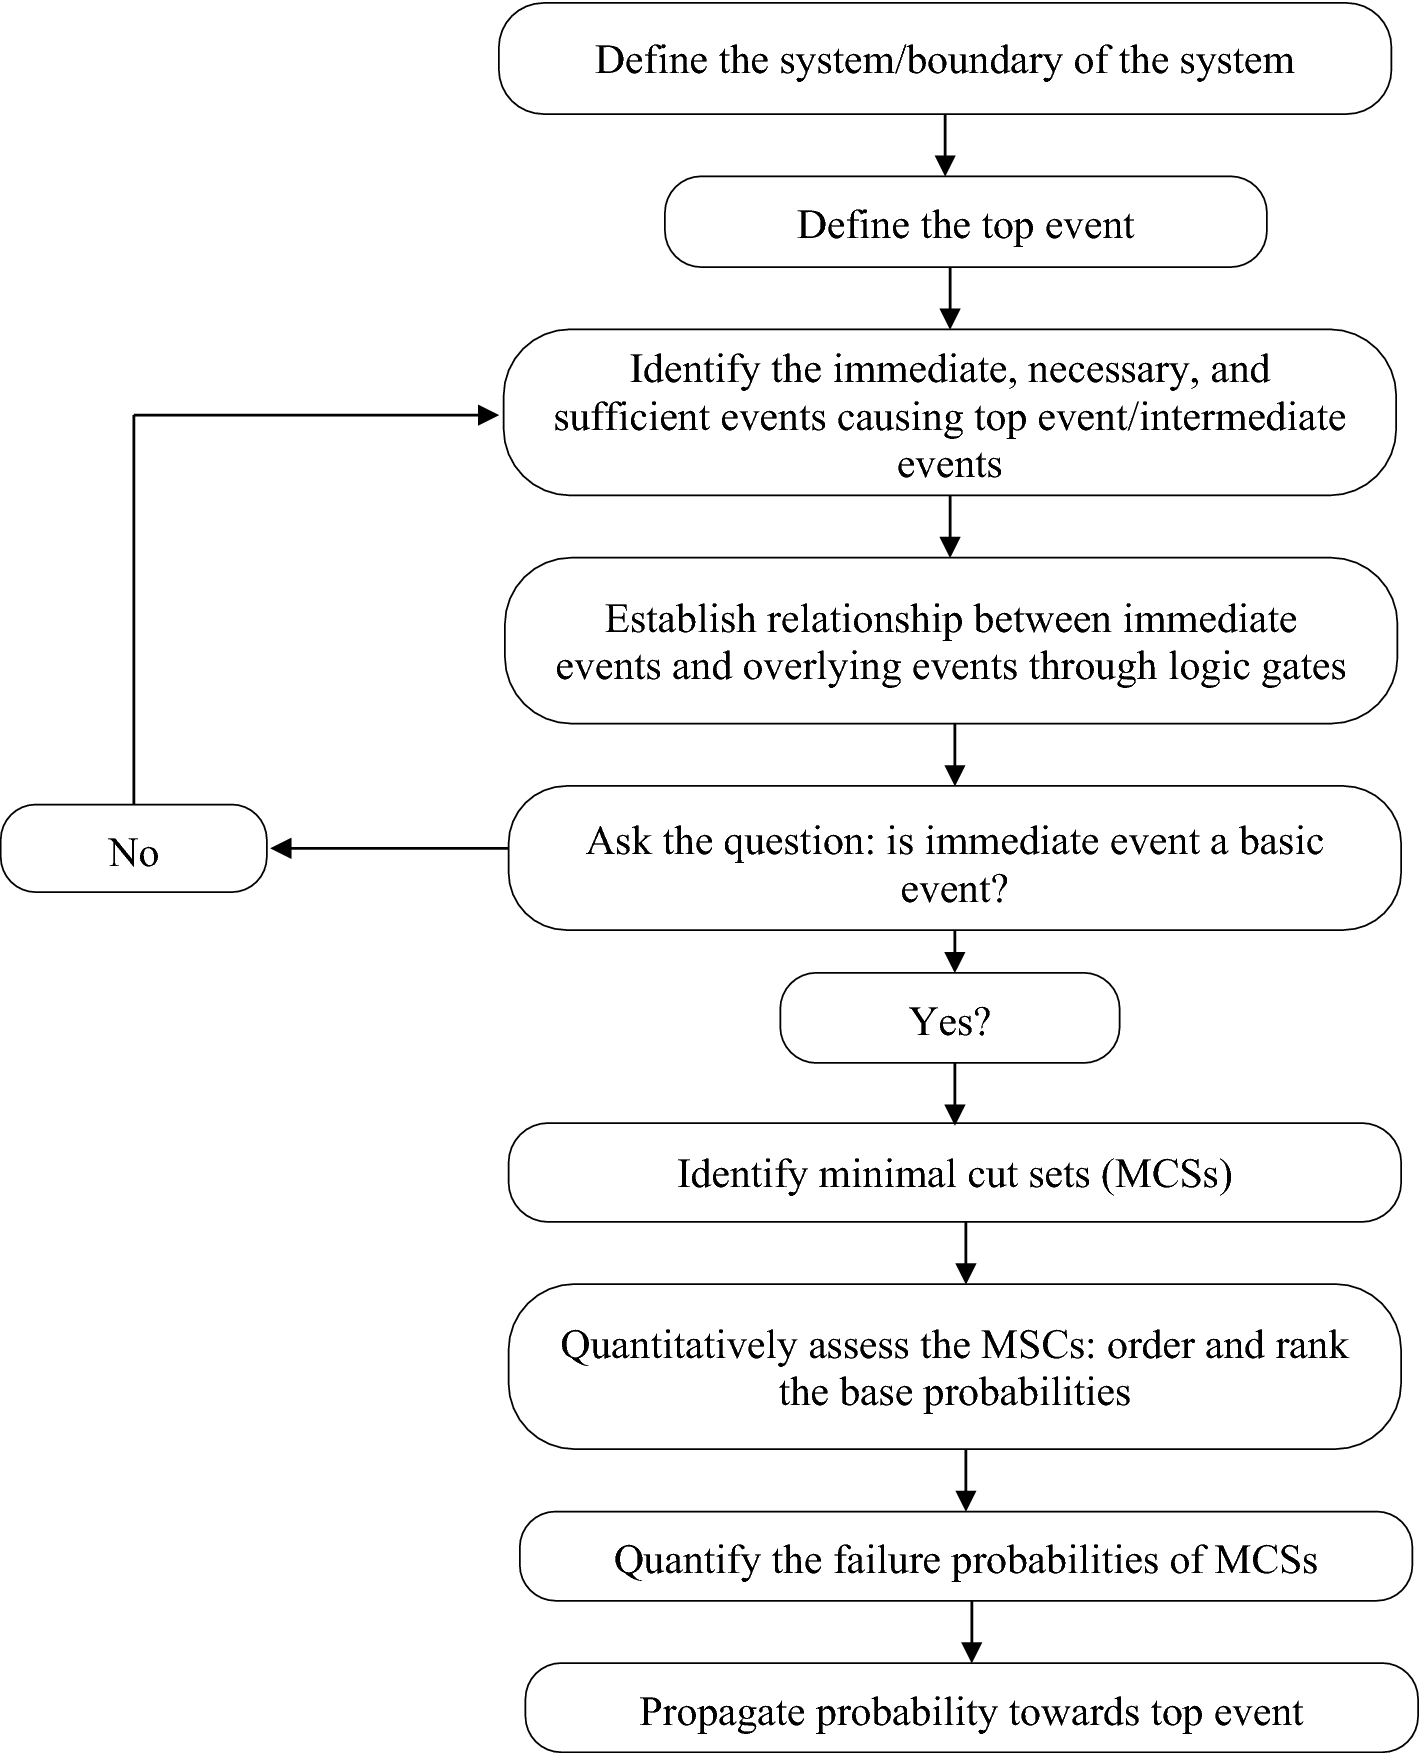 Methodologies for Assessing Risks of Accidents in Chemical Process